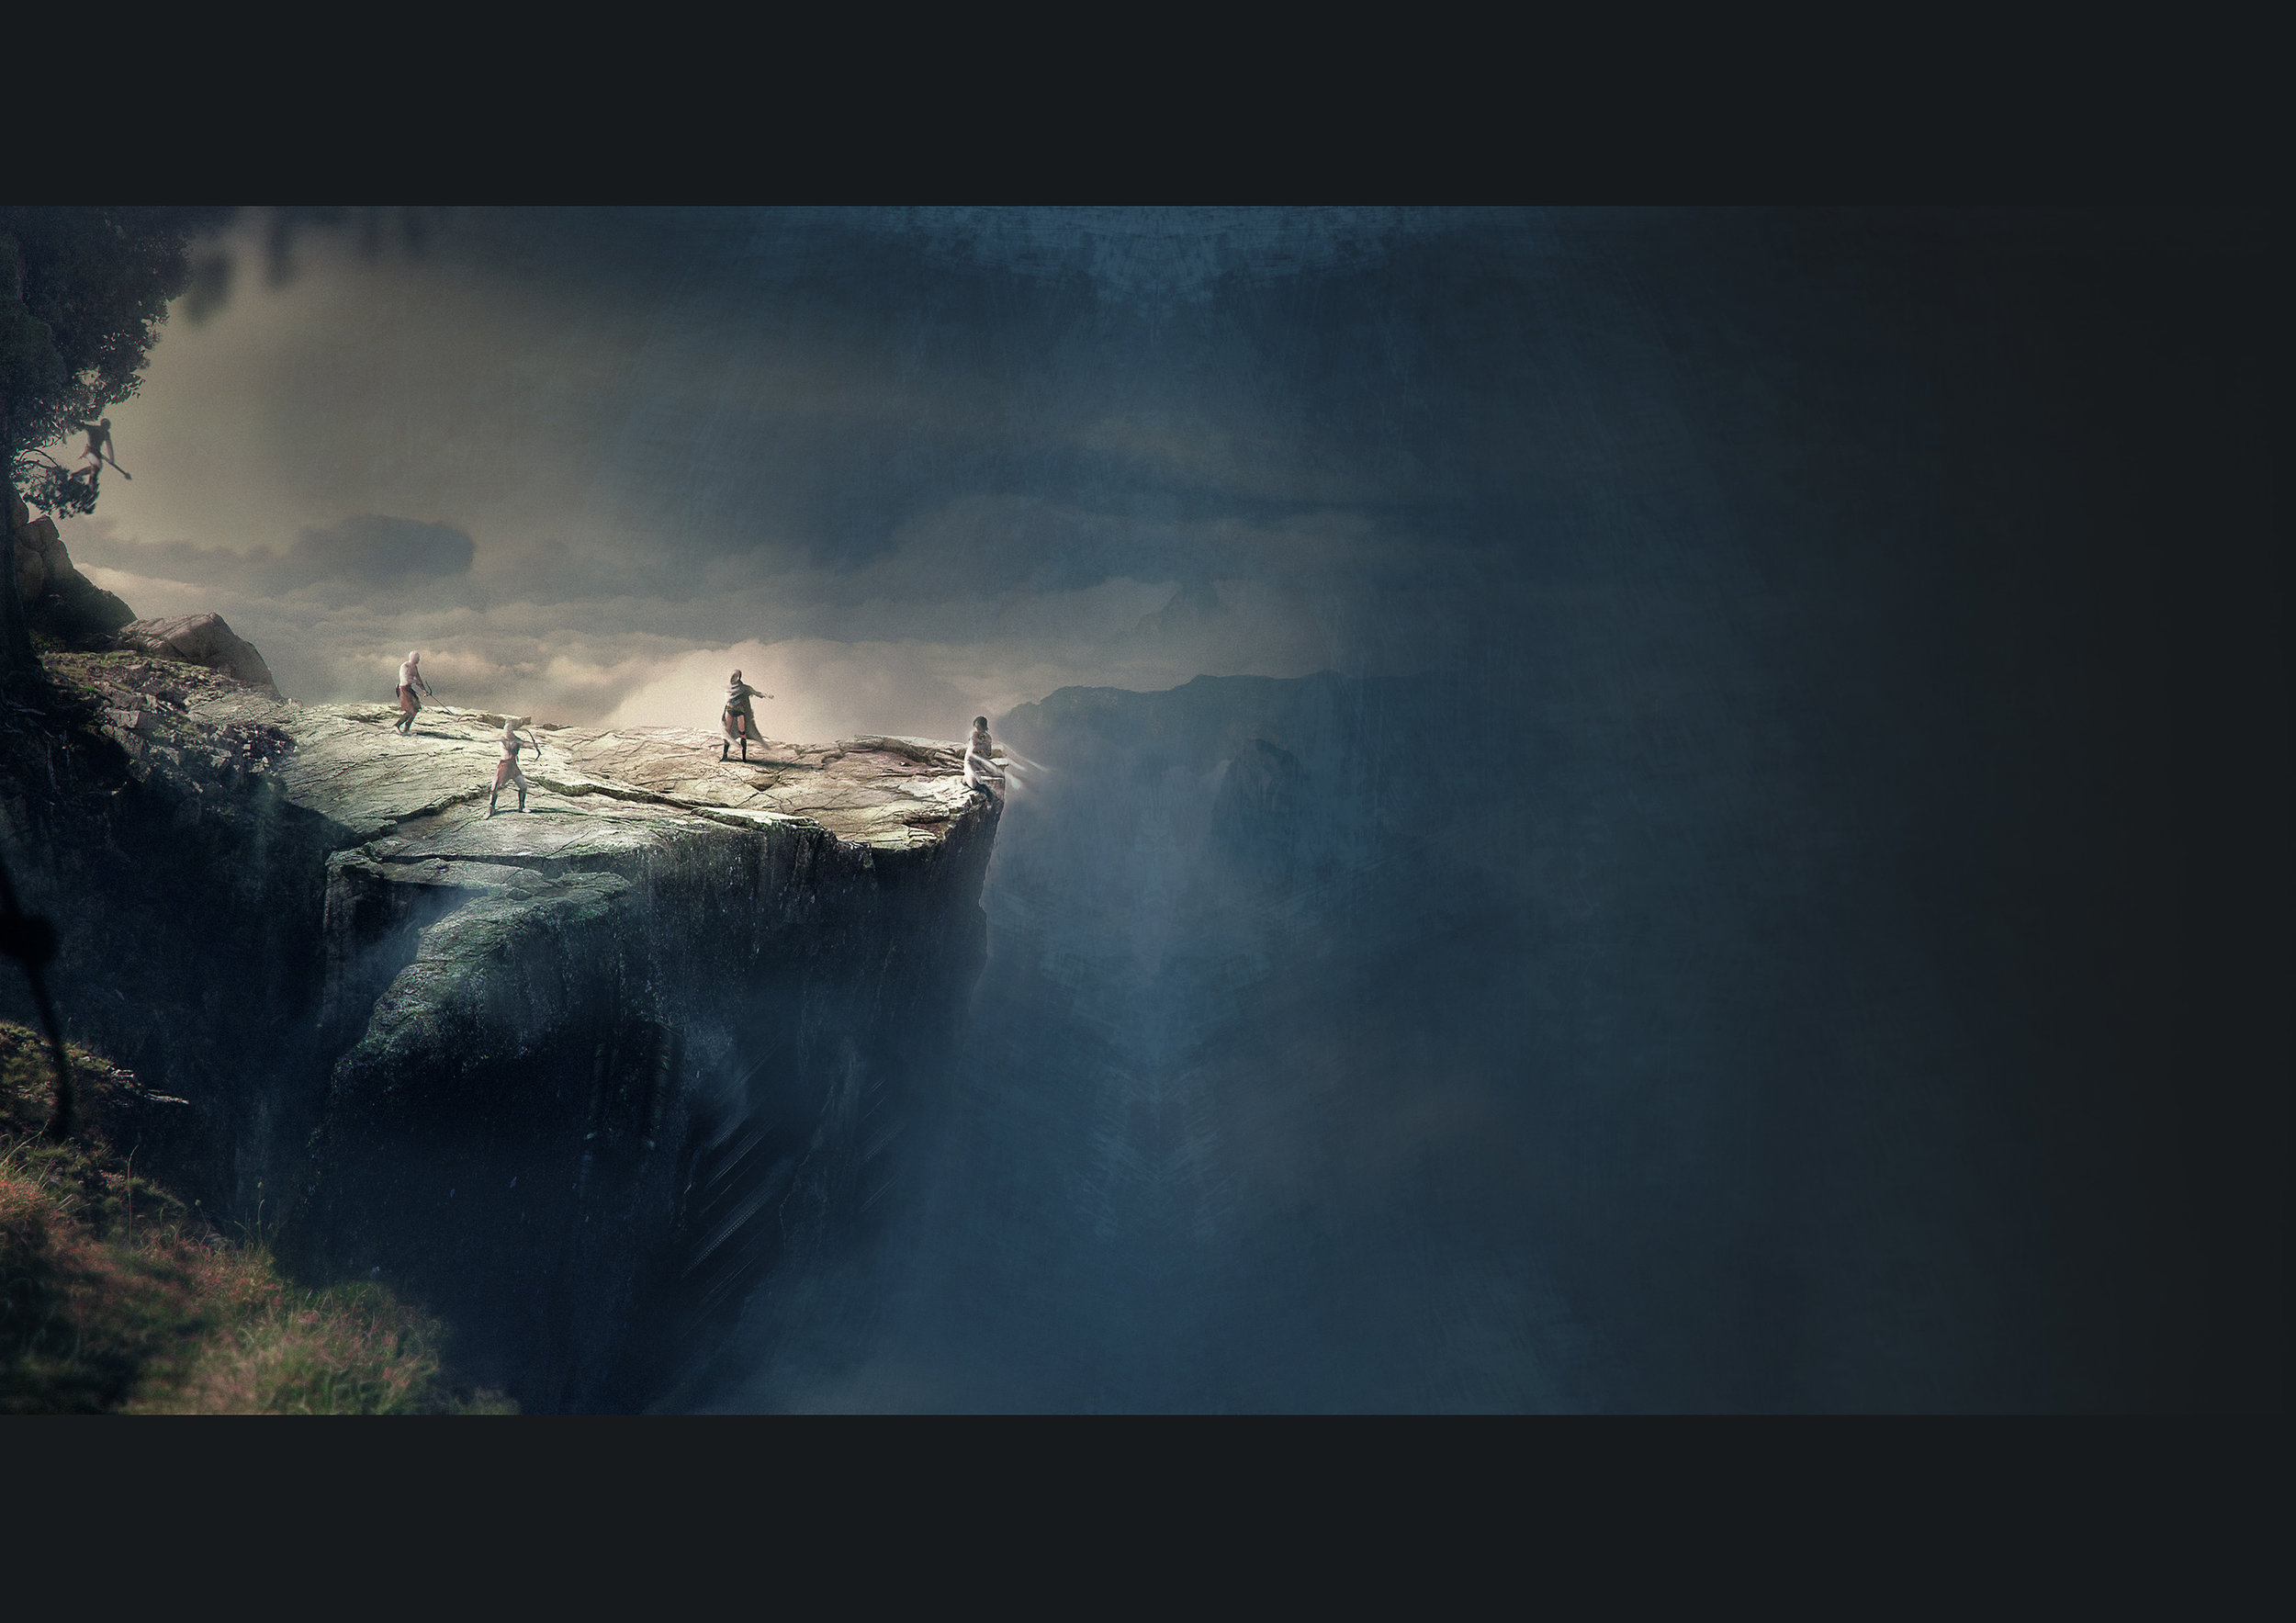 Concept by Marco Iozzi